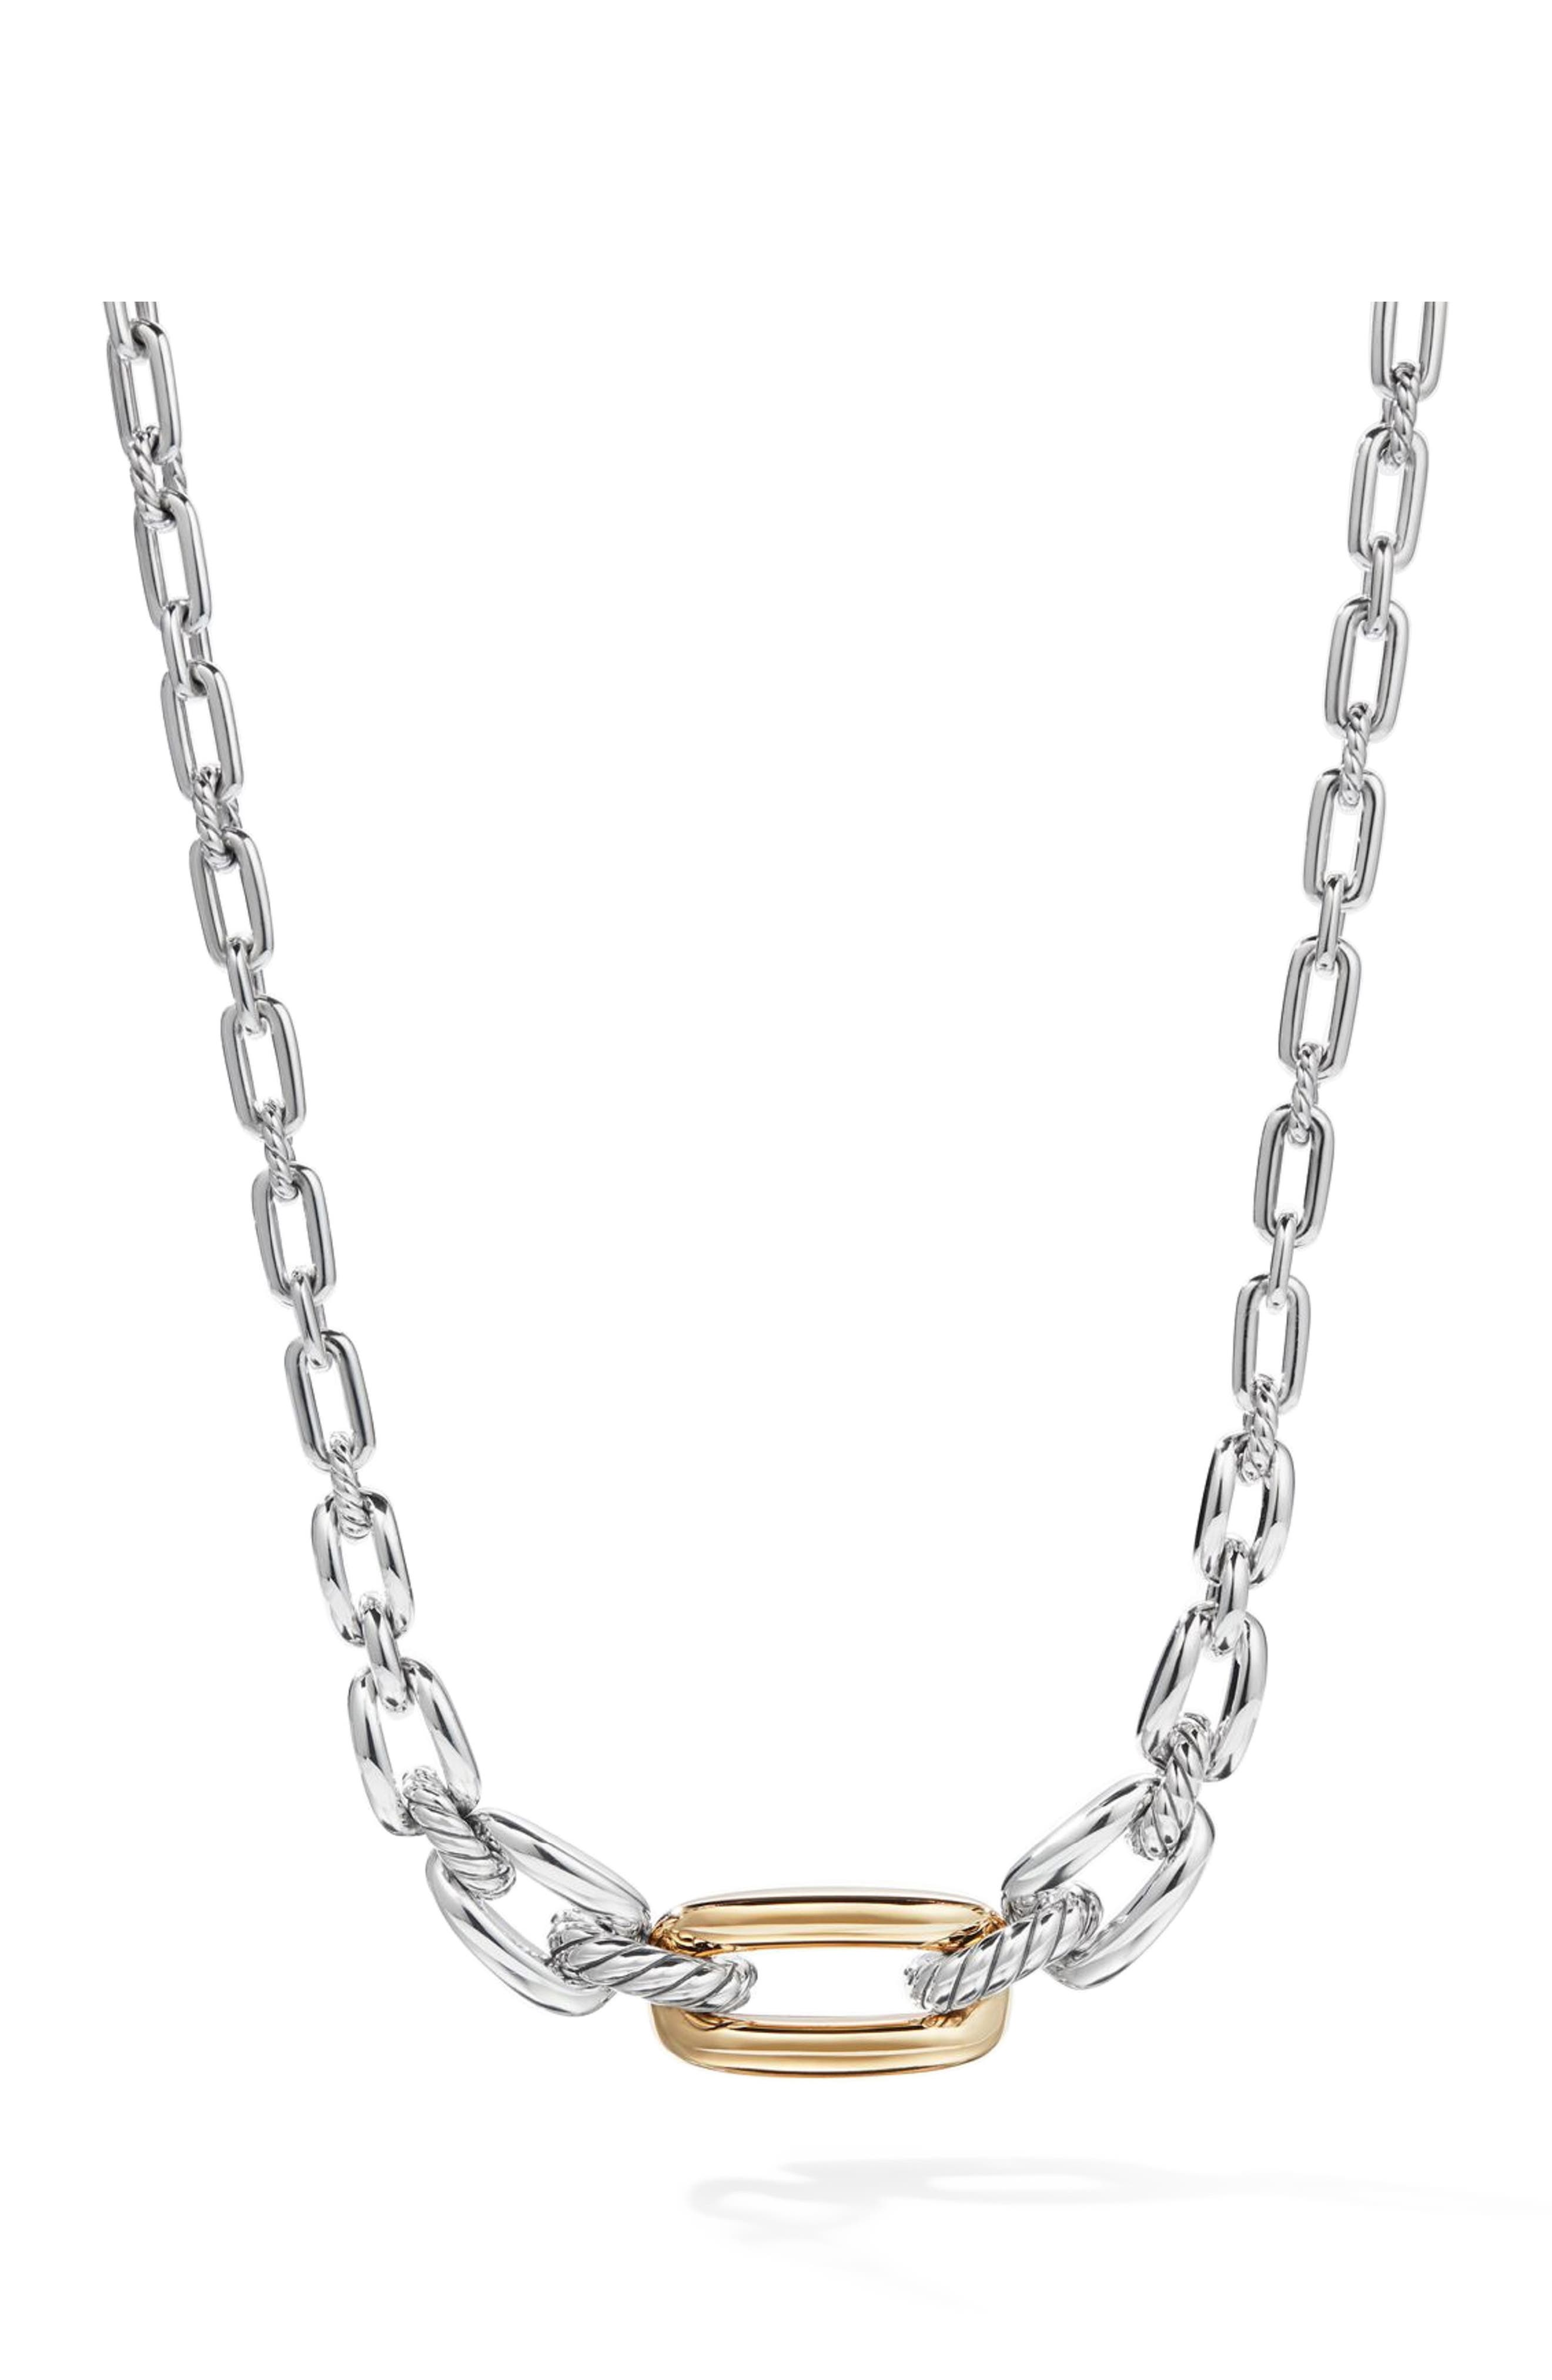 Wellesley Link Short Necklace with 18k Gold,                         Main,                         color, 18K YELLOW GOLD/ SILVER